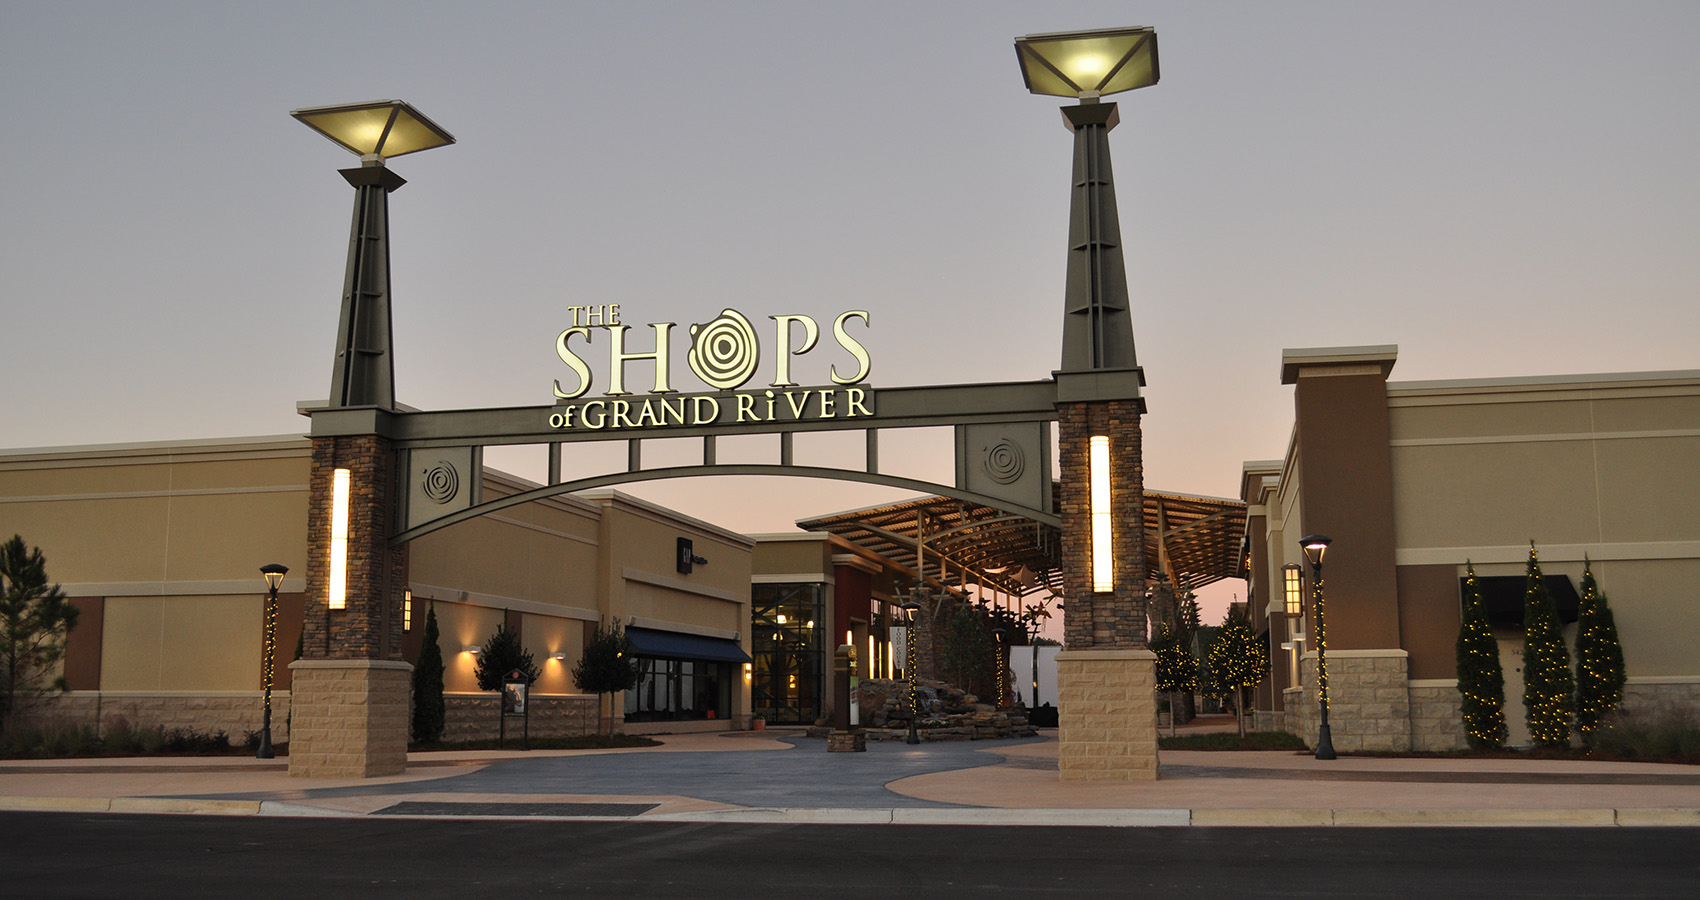 The Outlet Shops of Grand River - Dainel